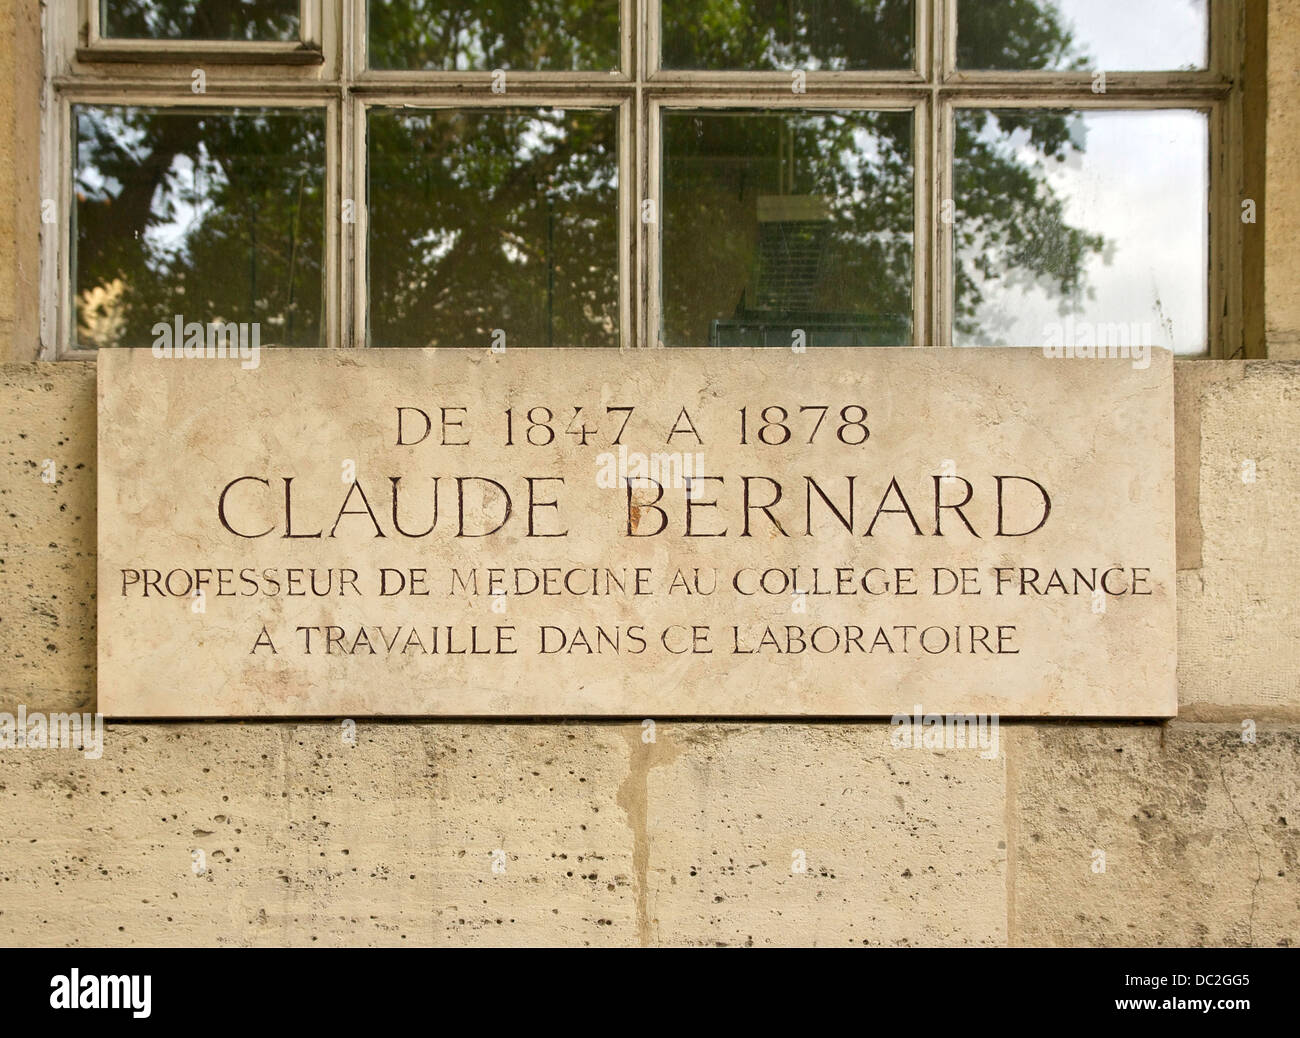 Plaque in tribute to Claude Bernard, at Collège de France in Paris, France. - Stock Image